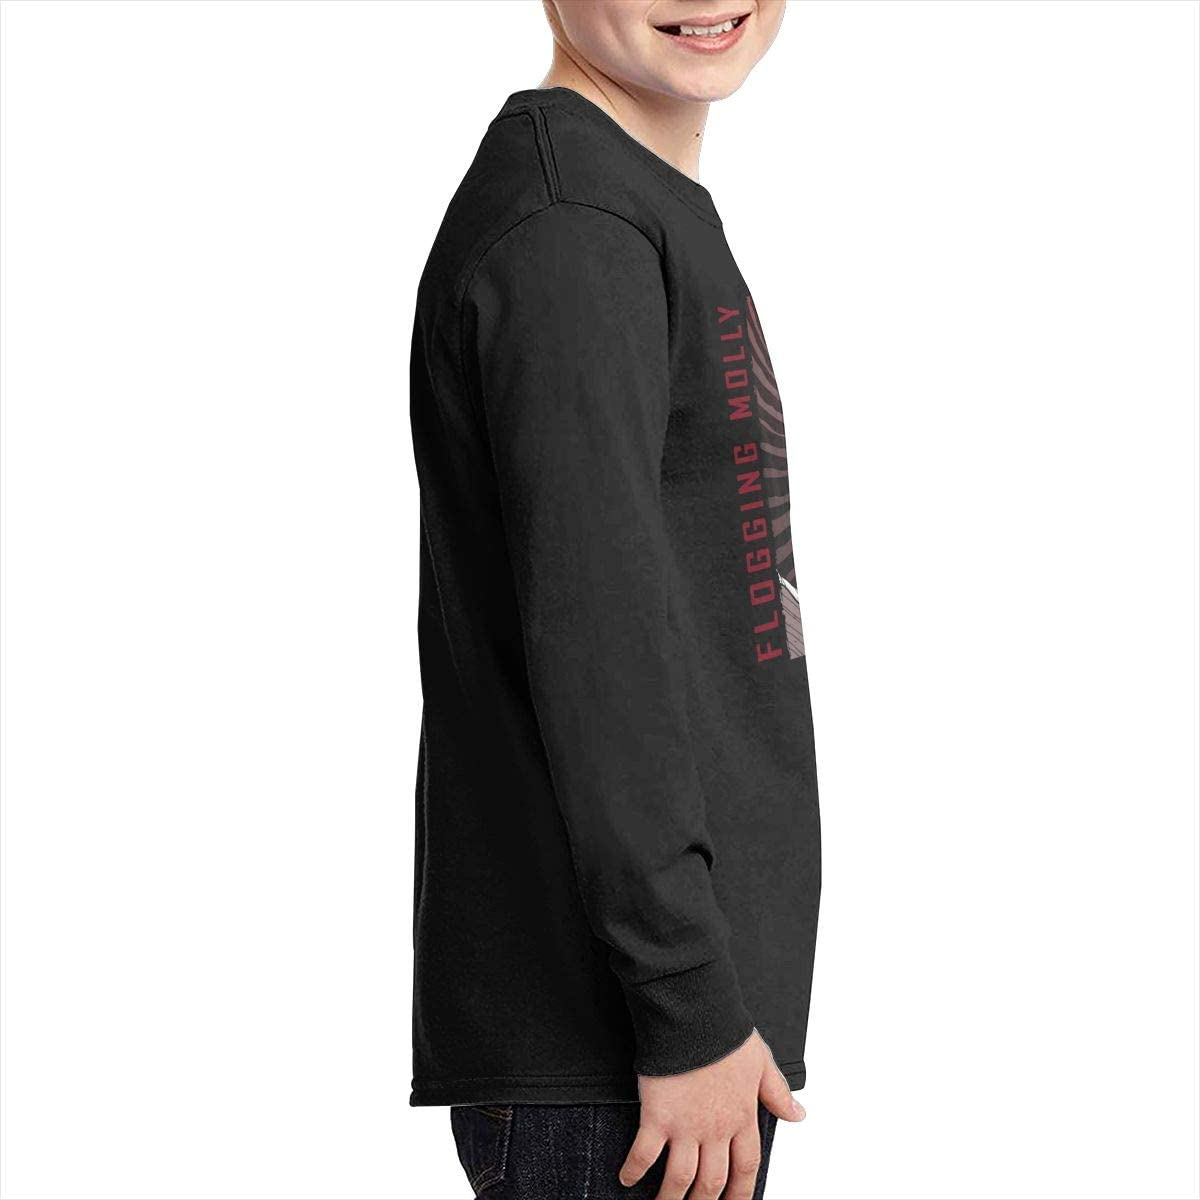 MichaelHazzard Flogging Molly Tour 2019 Youth Classic Long Sleeve Crewneck Tee T-Shirt for Boys and Girls